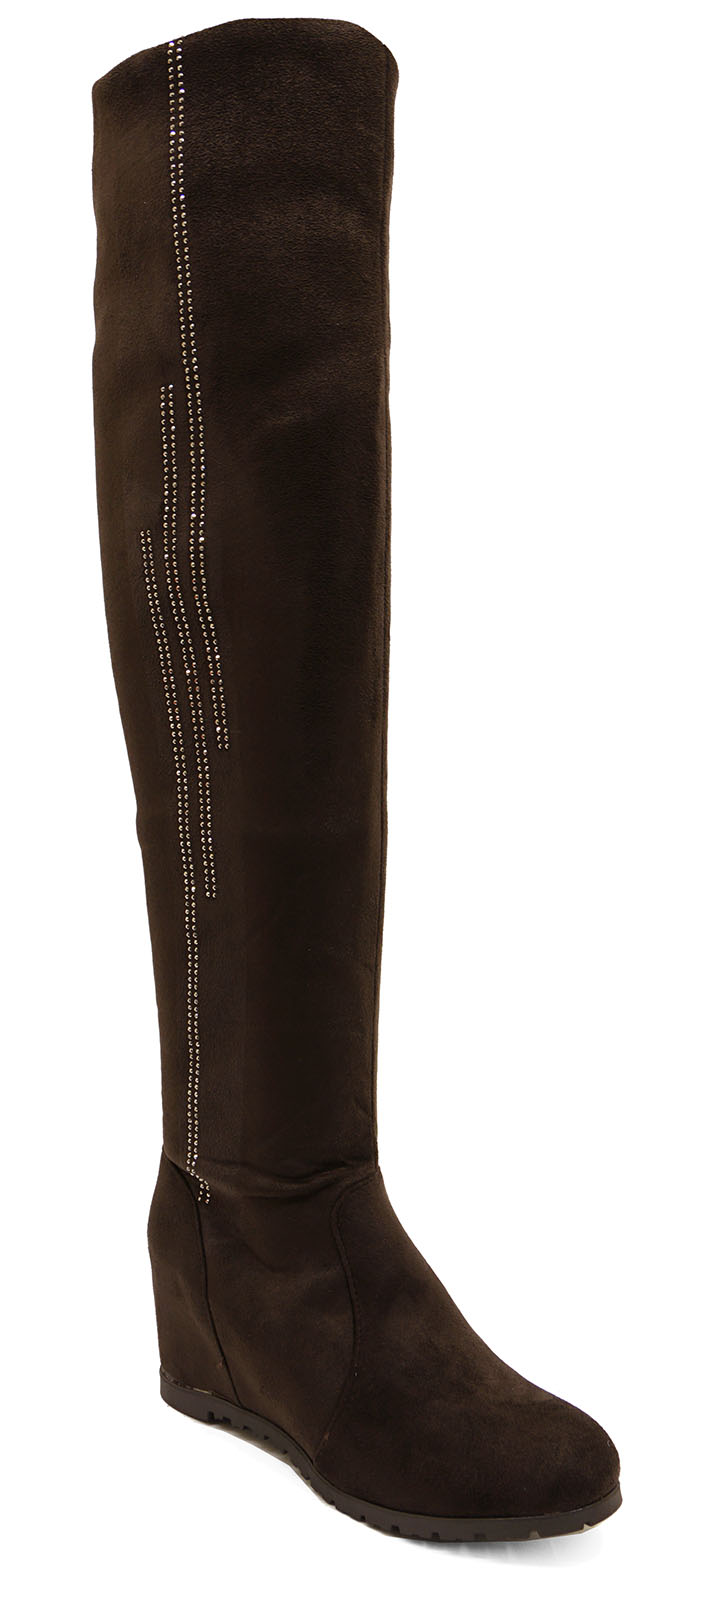 LADIES-BROWN-SOFT-STRETCH-OVER-THE-KNEE-HIGH-RUCHED-WEDGE-BOOTS-SHOES-UK-3-8 thumbnail 7